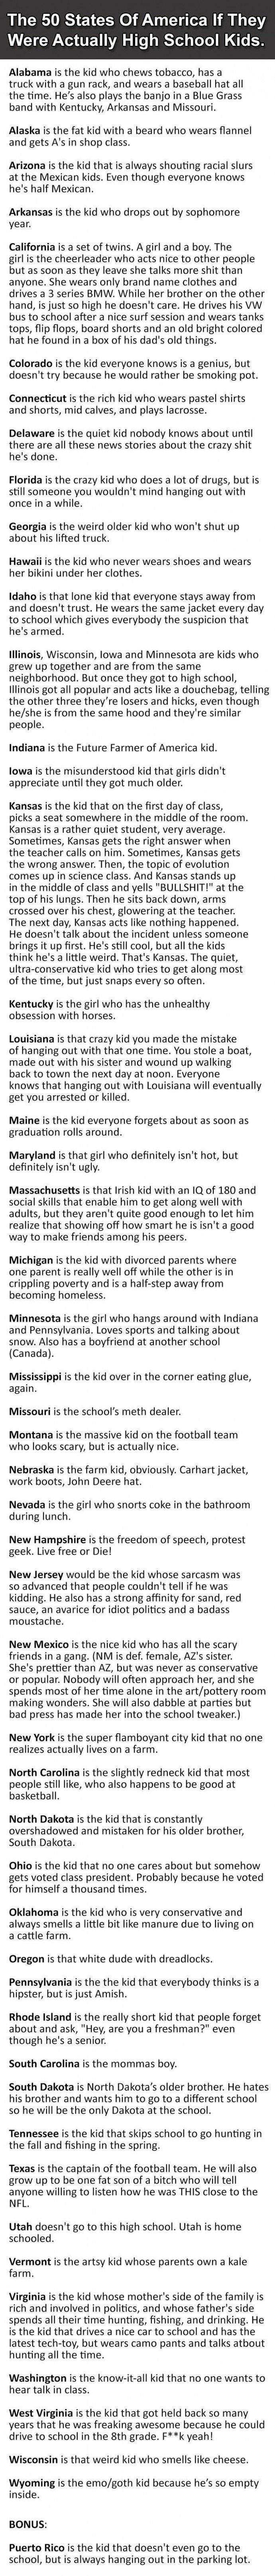 50-states-of-america-if-they-were-actually-high-school-kids-list-full